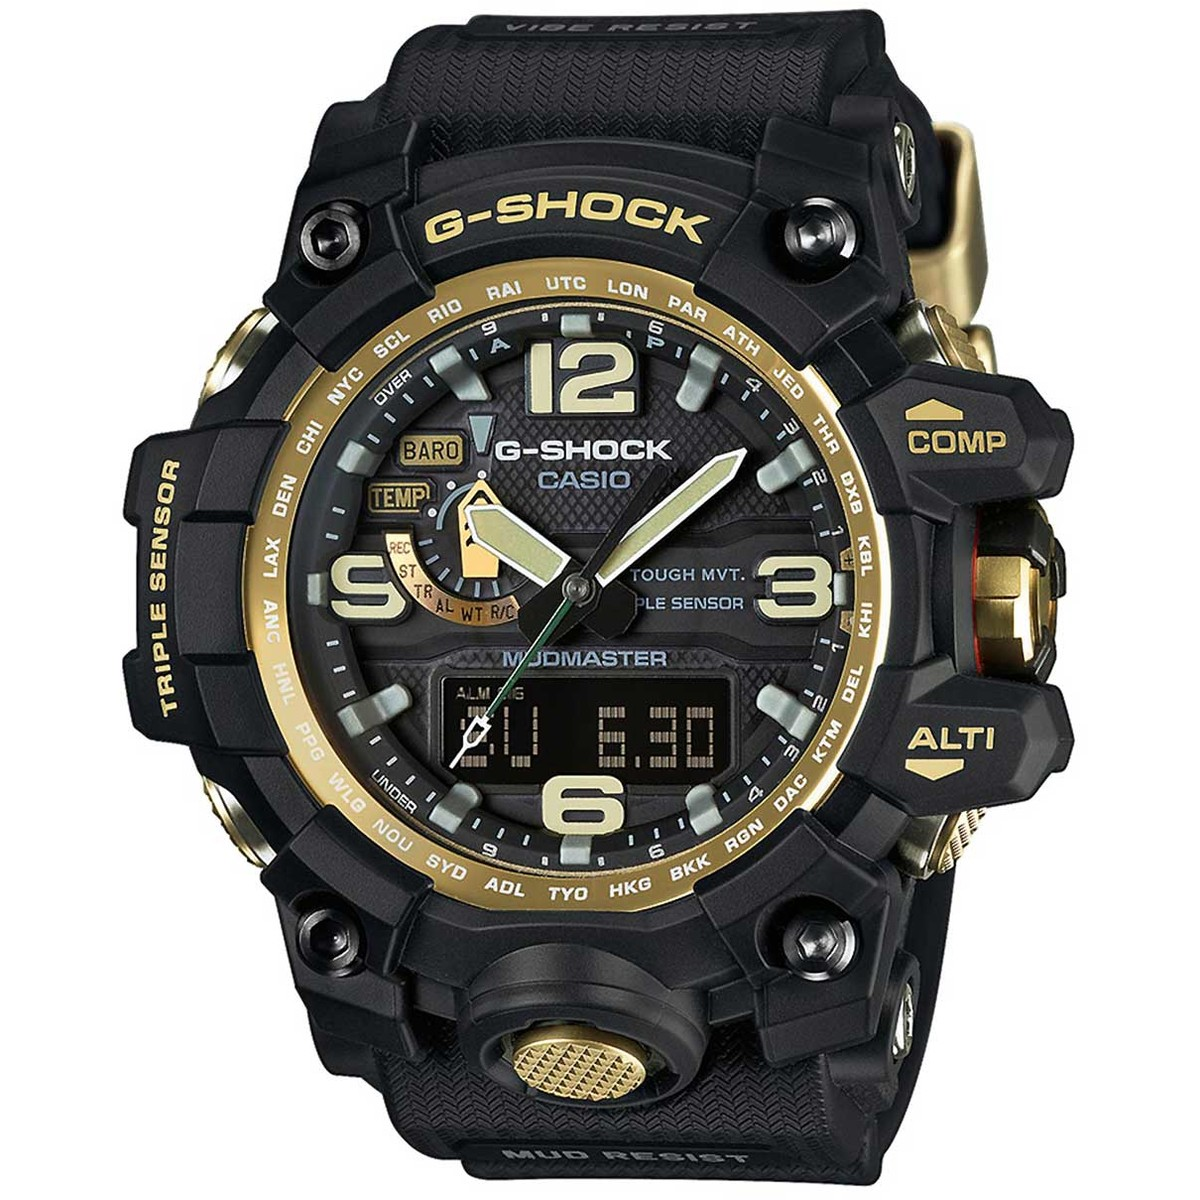 Ceas barbatesc Casio G-Shock GWG-1000GB-1AER de mana original